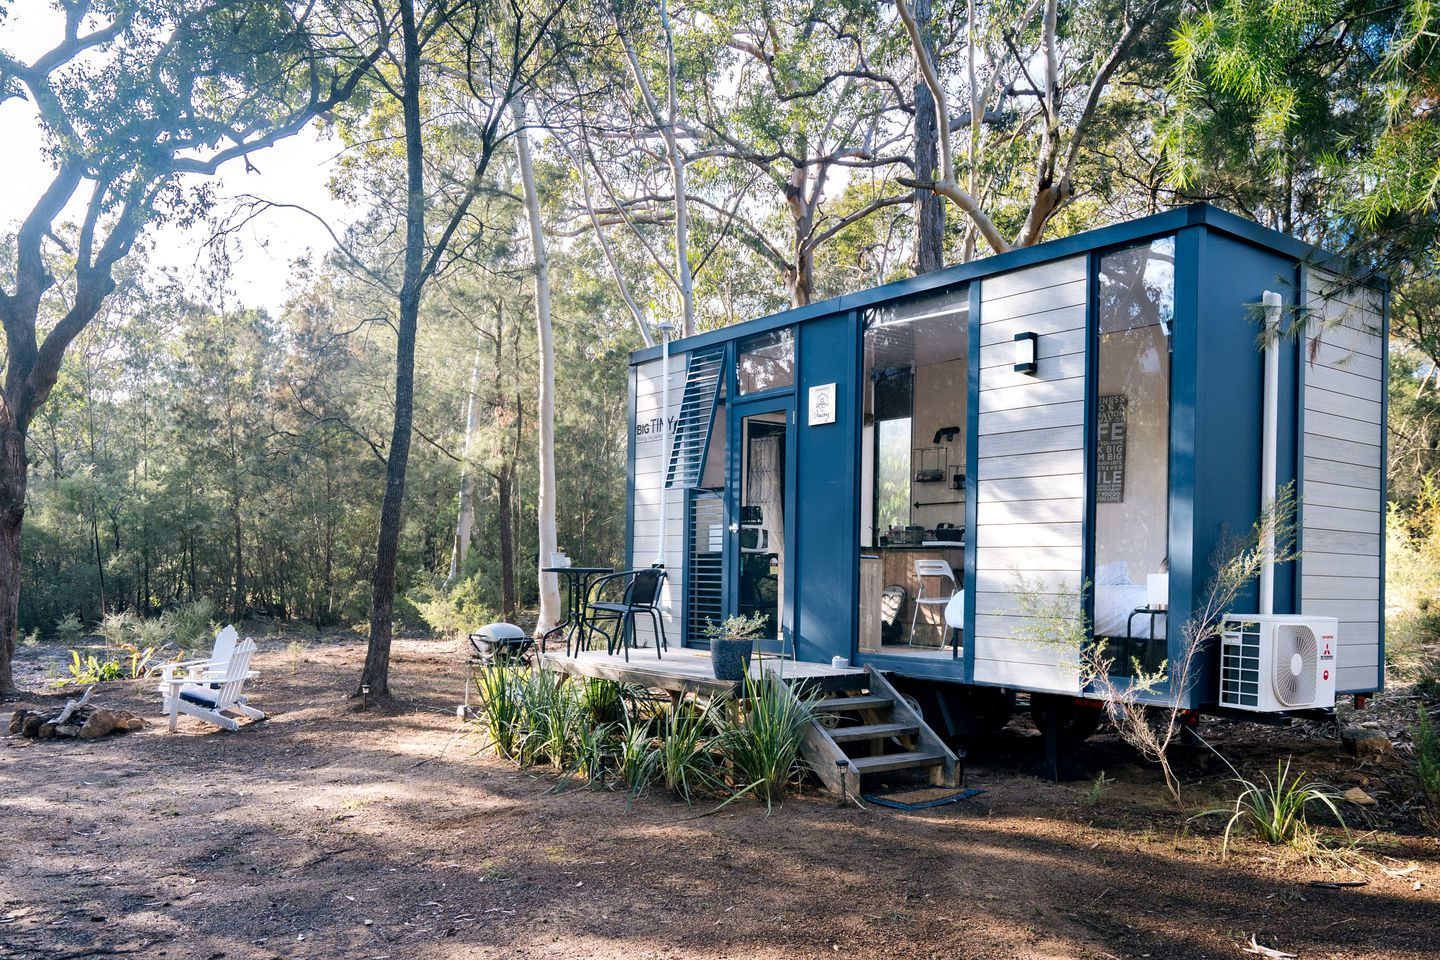 Kangaroo Valley accommodation ideal for glamping in New South Wales